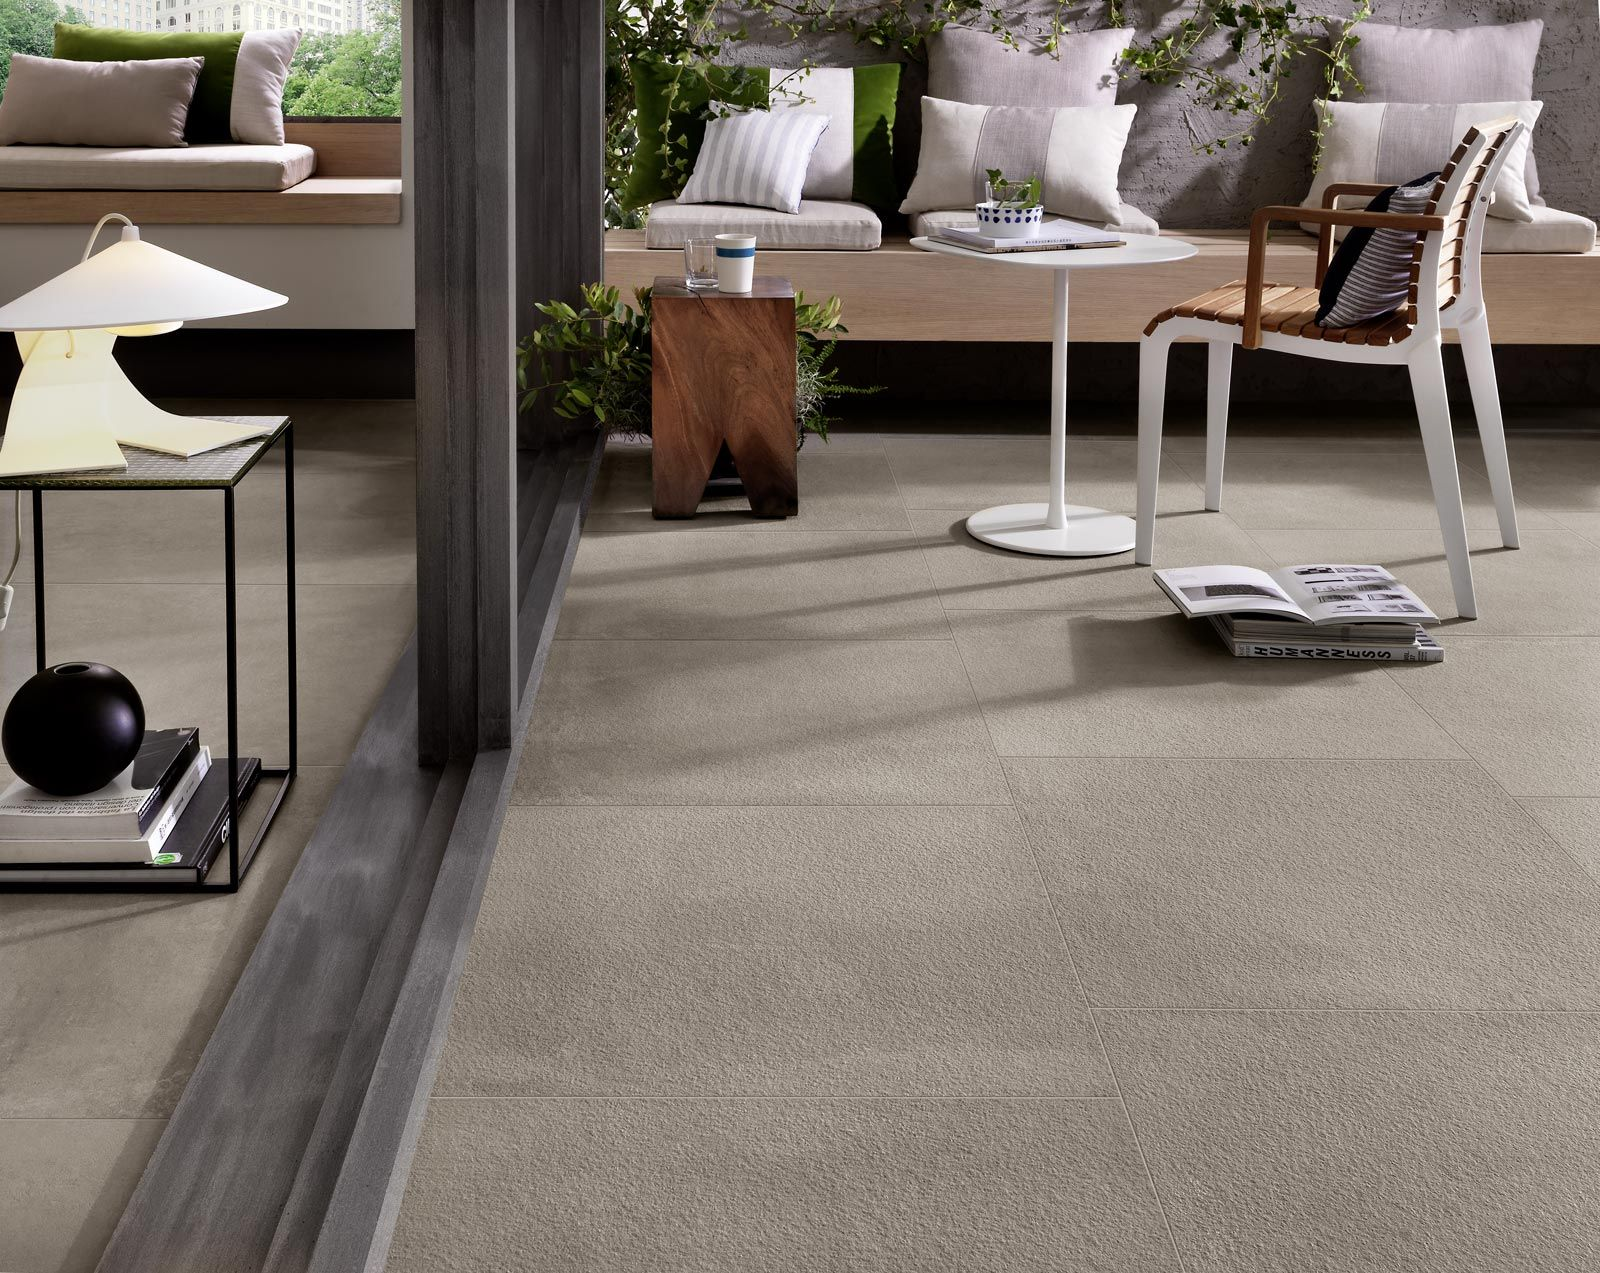 Indoor Outdoor Carpet Tiles Home Depot Outdoor Carpet Indoor